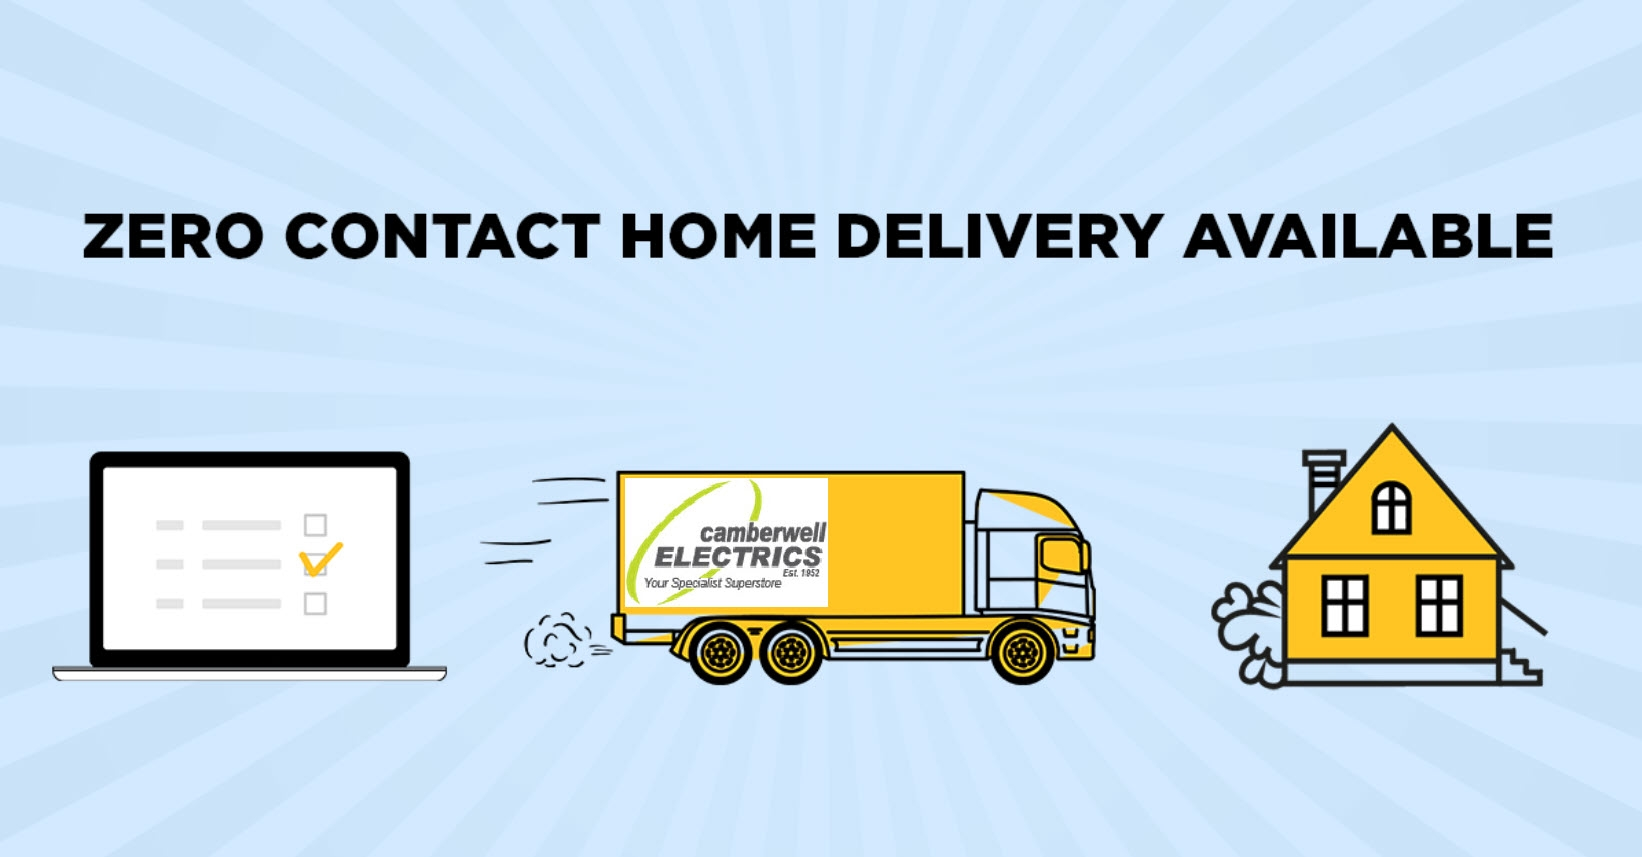 ZERO Contact Home Delivery Available